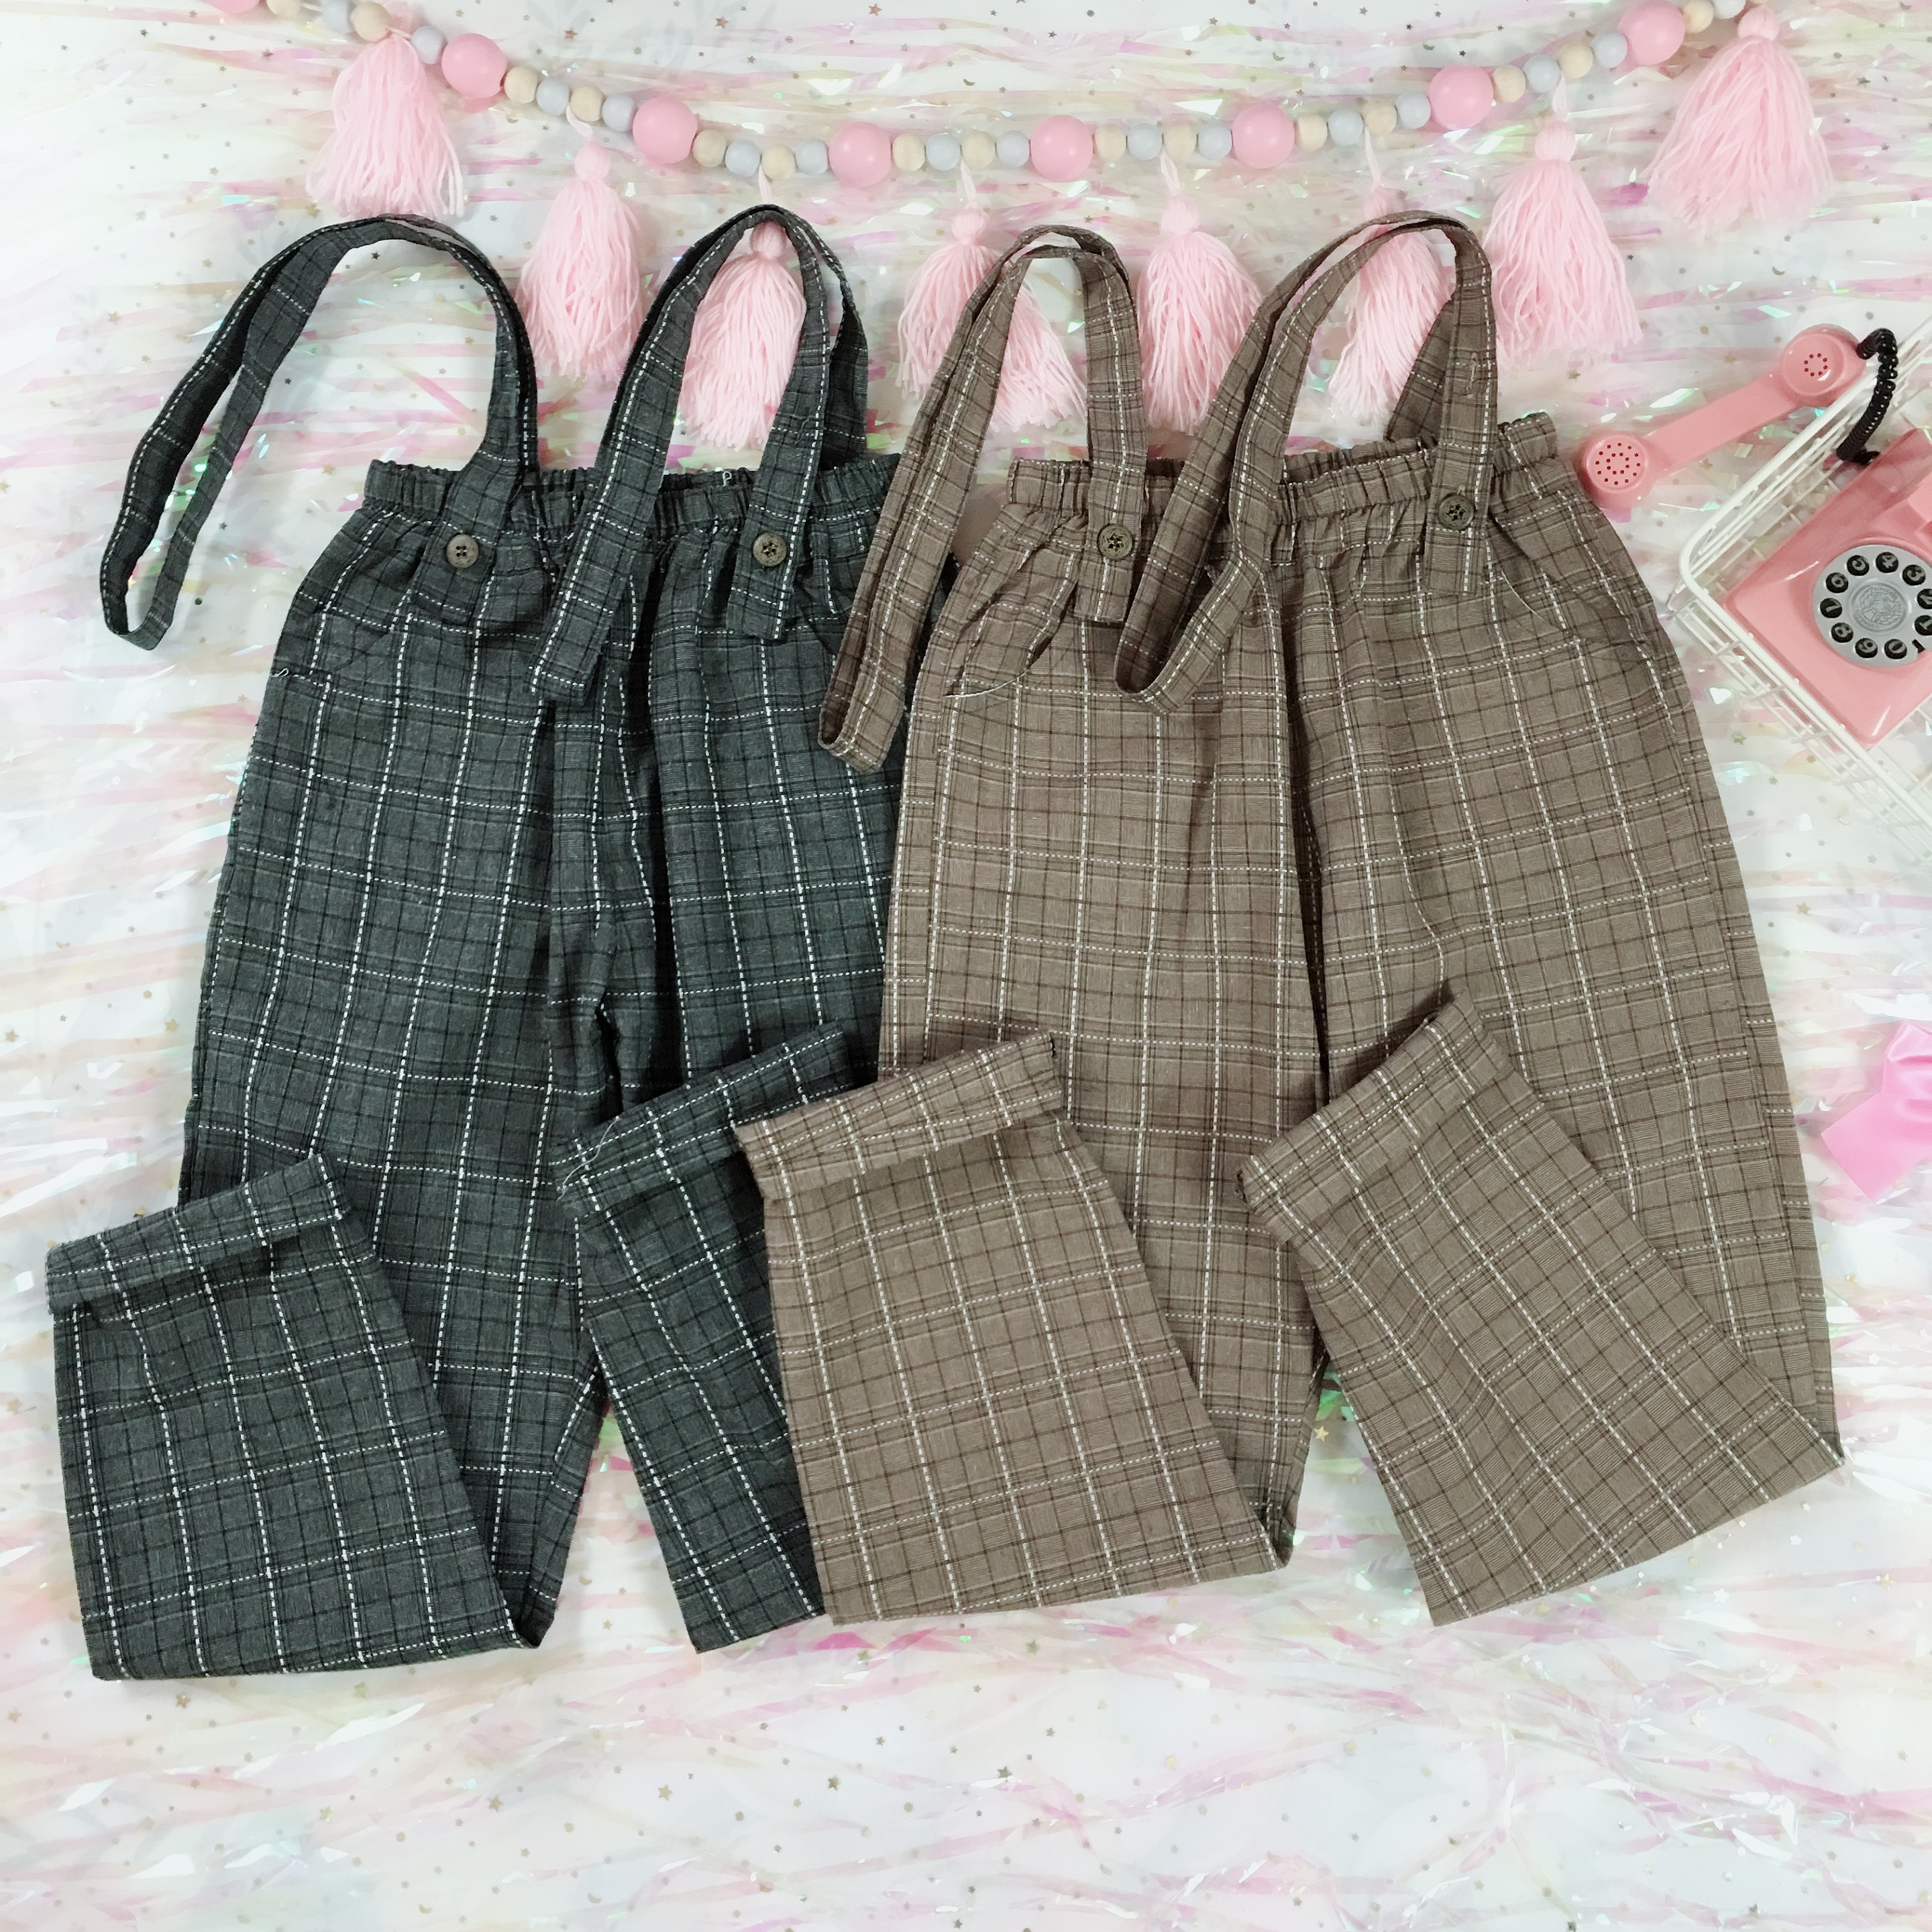 8ec04c82e4 Vintage Women Jumpsuits Japanese Cute Girls  Elastic Waist Casual Plaid  Overalls Backless Cotton Linen Suspender Wide Leg Pants